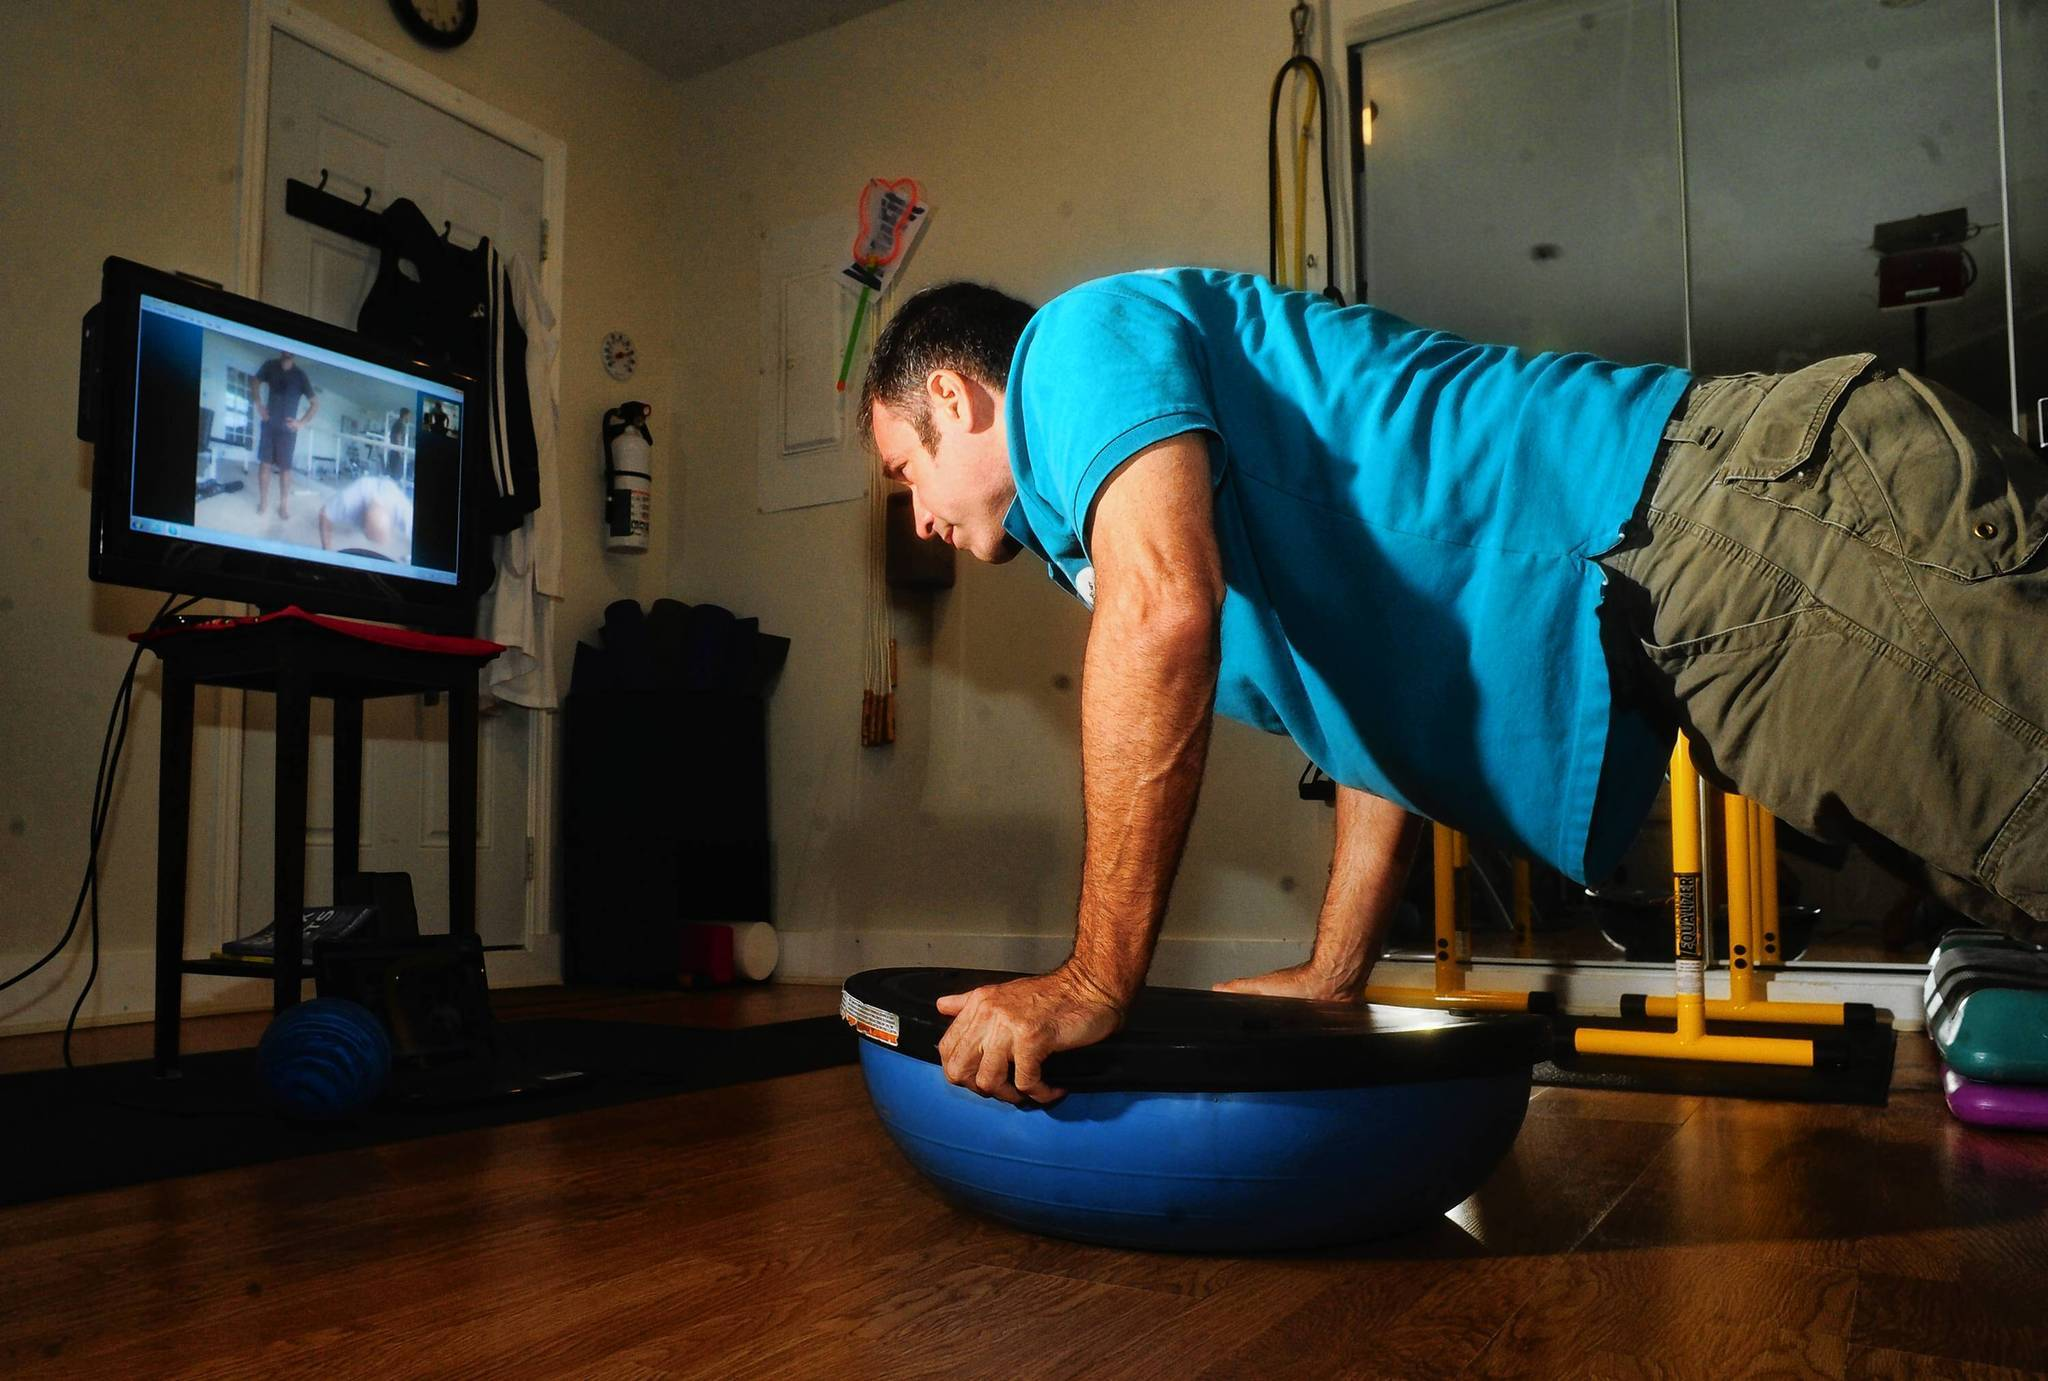 Delray Beach VIRTUAL PERSONAL TRAINER Marc Thompson, owner of VirtuFit, works out with a client in Maine via Skype. Joe Cavaretta, SunSentinel (c)2012